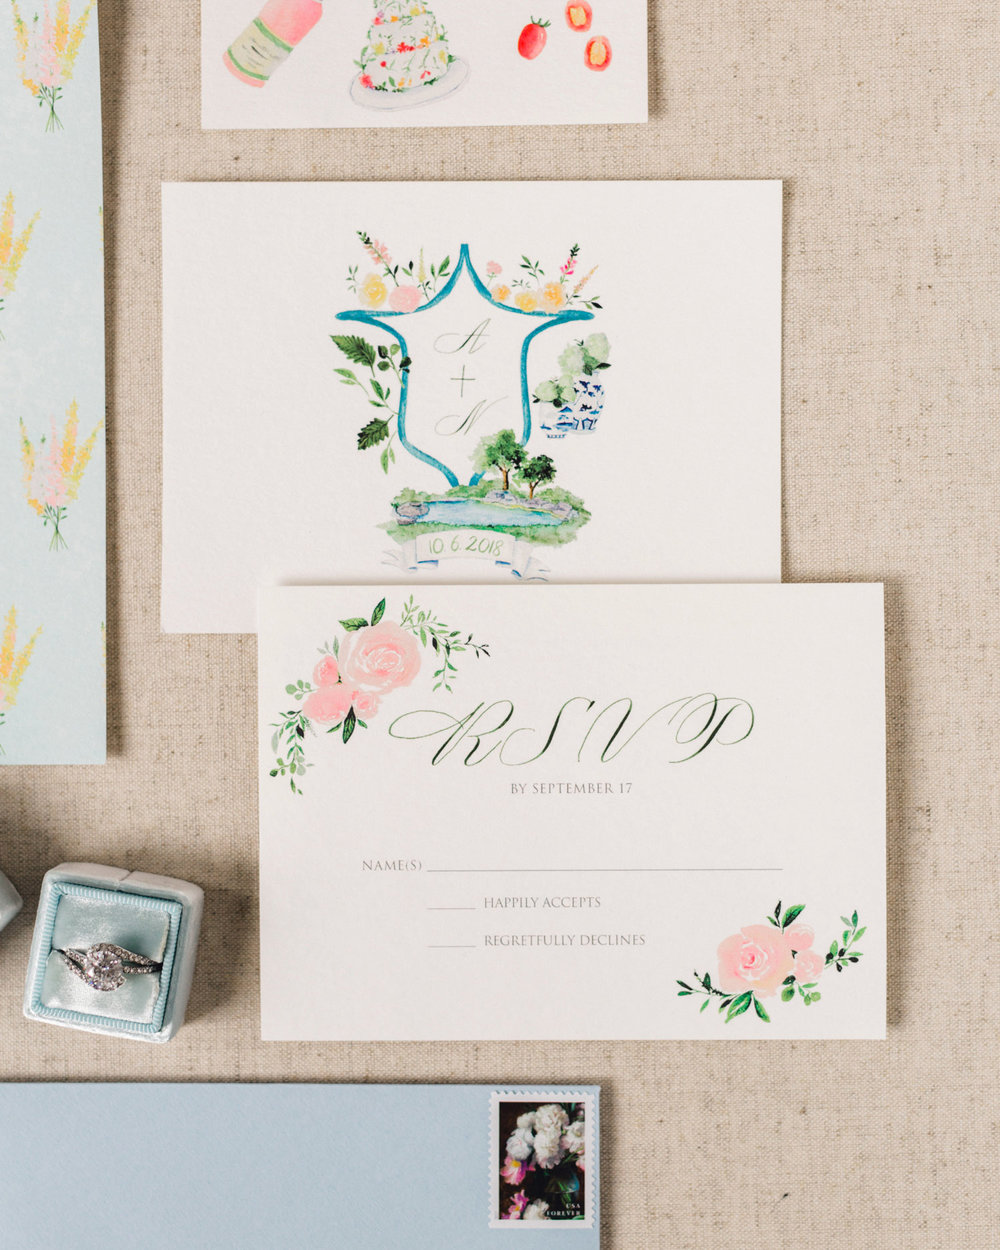 Watercolor wedding stationery 4.JPG